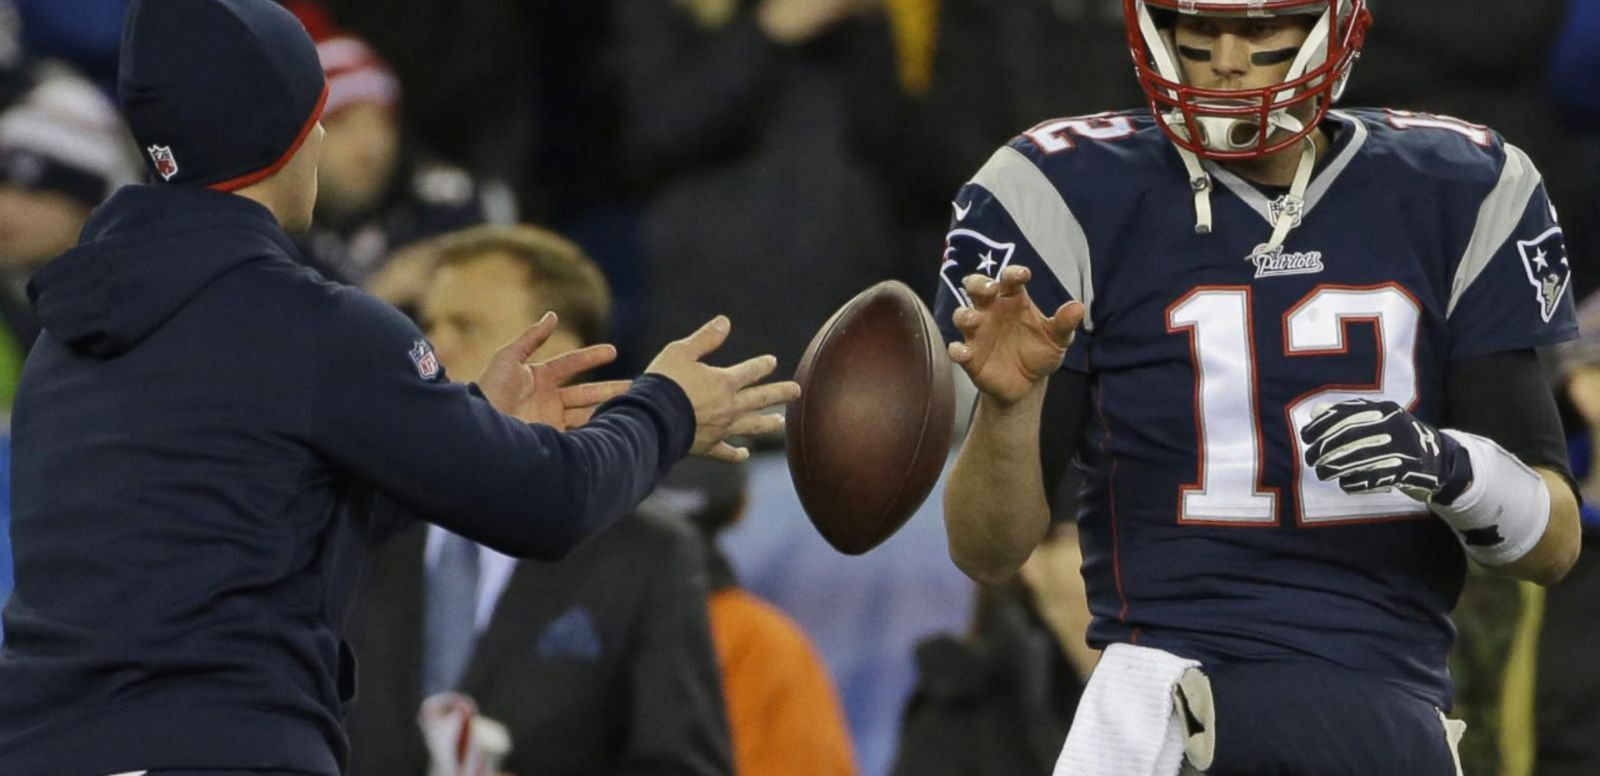 VIDEO: Super Bowl 2015: Will Drama Off the Field Overshadow the Big Game?